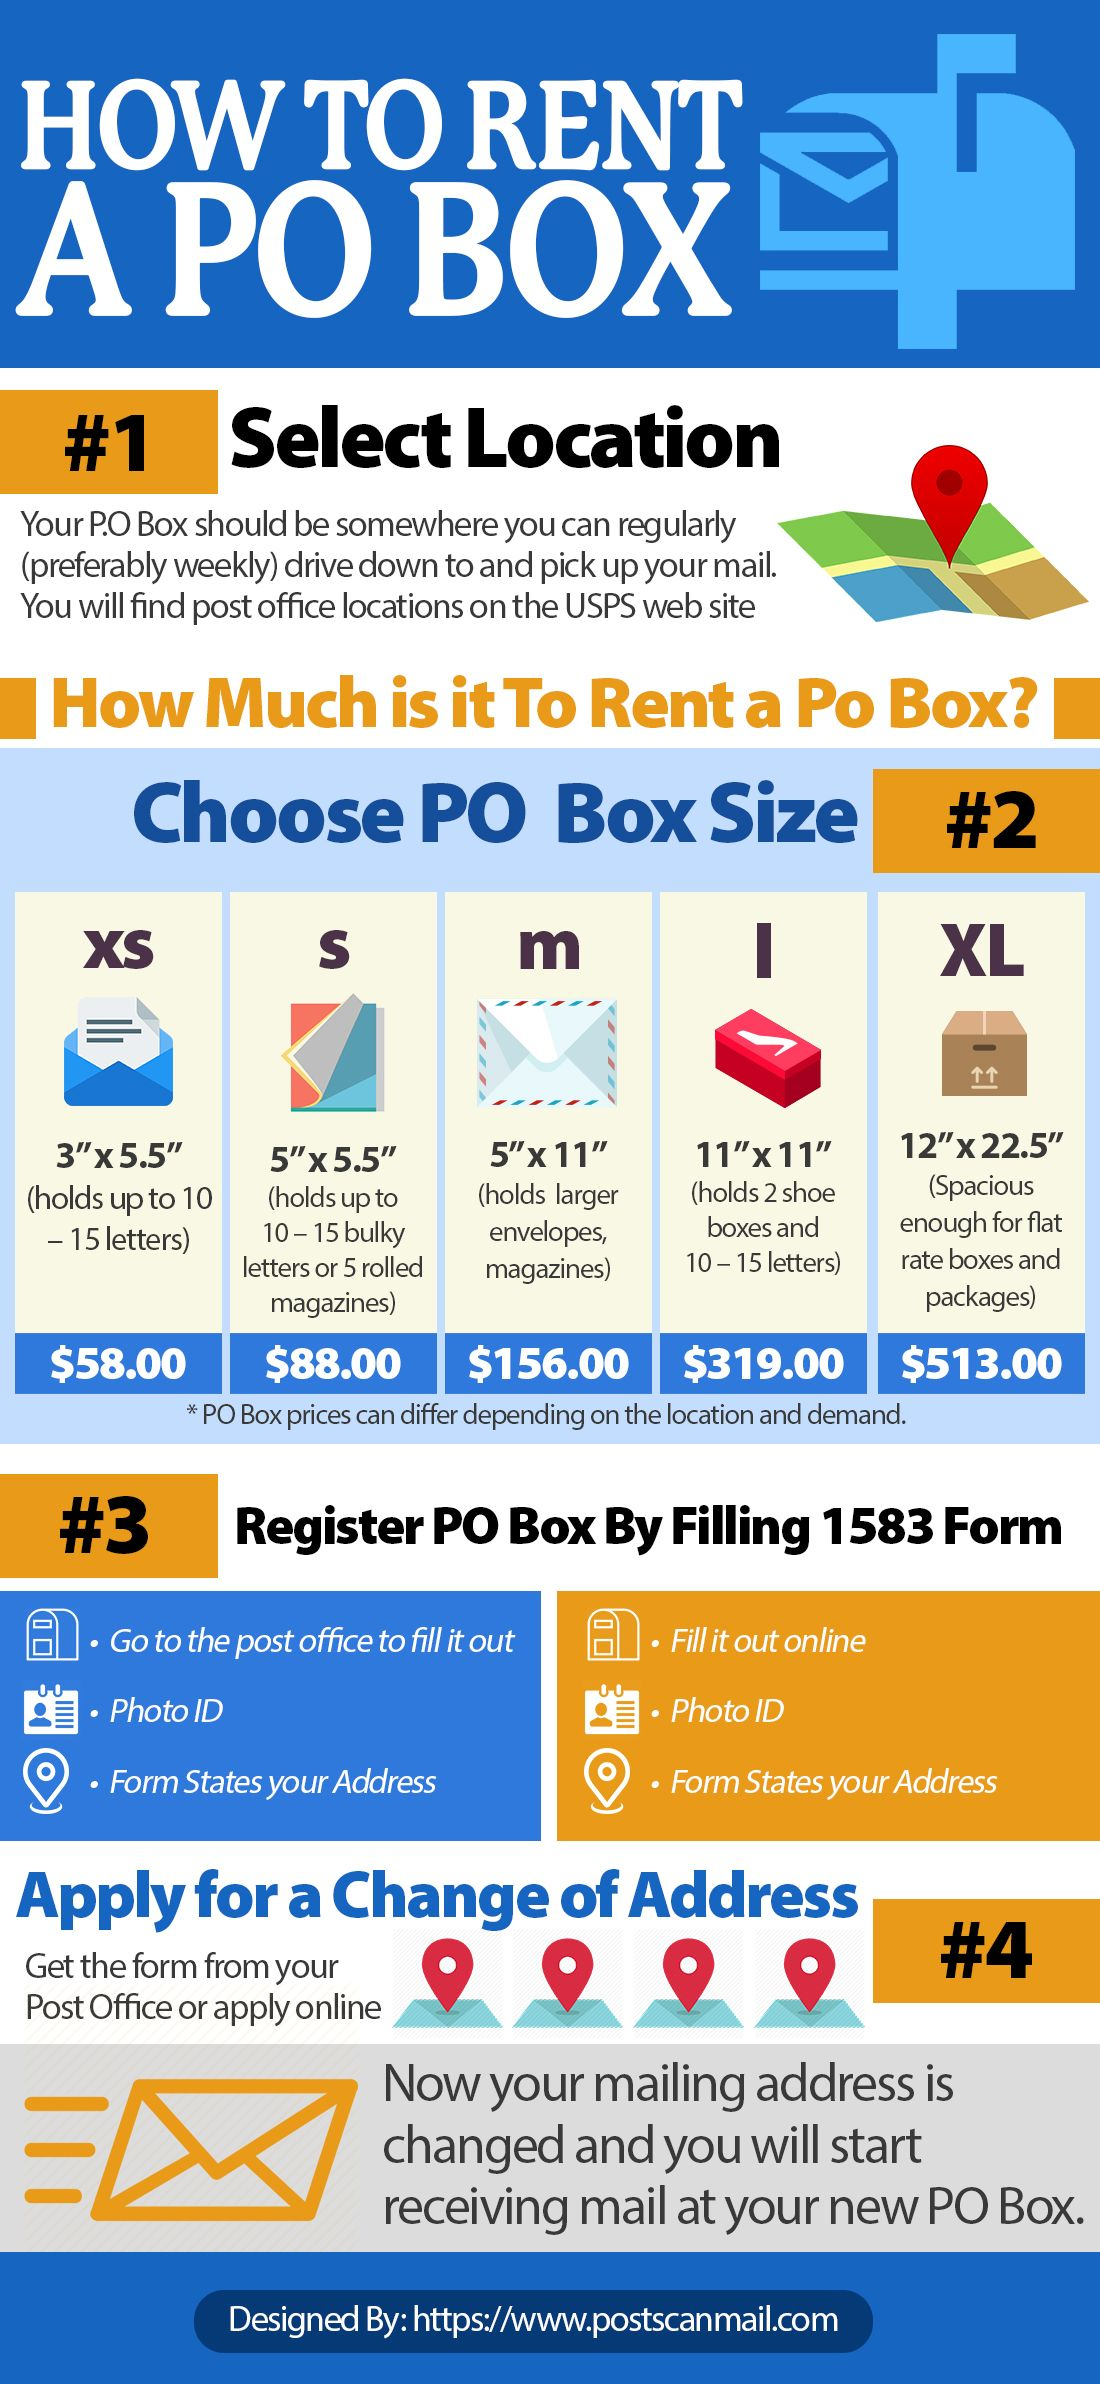 1ba91dfa13fbef8fe3df8af4b557e4af - How To Get A Po Box At A Post Office